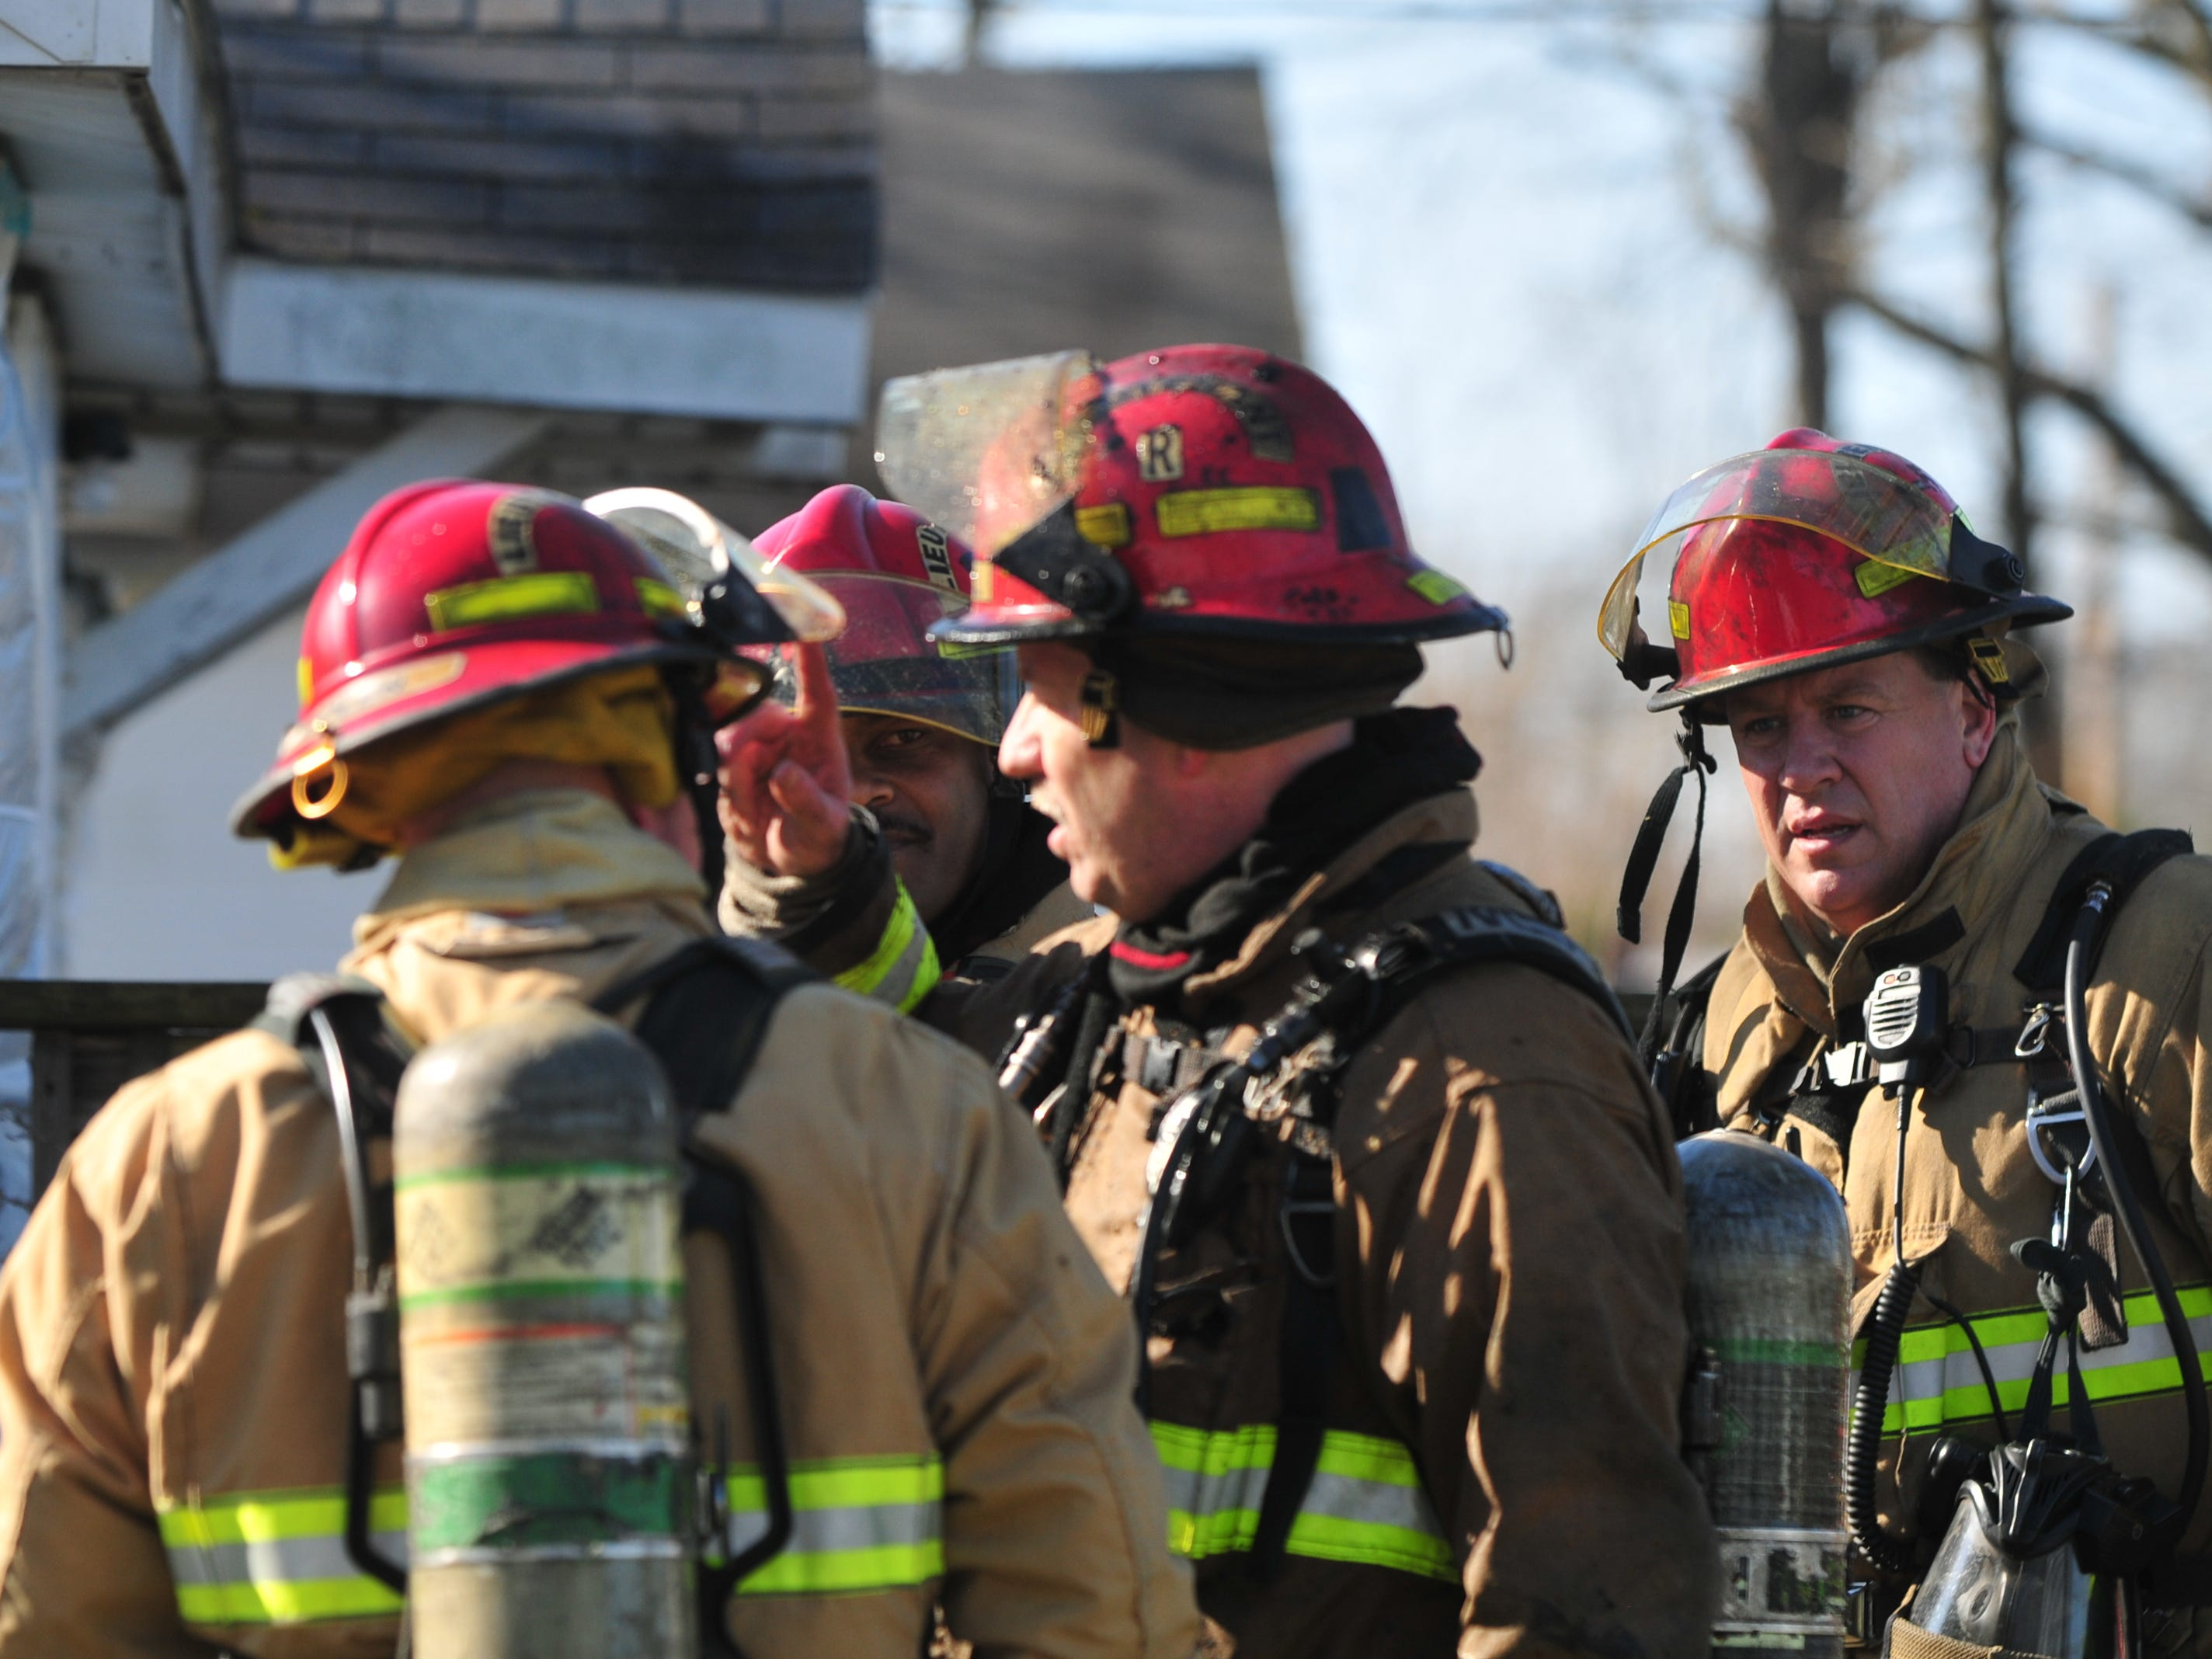 Richmond Fire Department personnel discuss a house fire Wednesday morning in the 2100 block of South 11th Street.